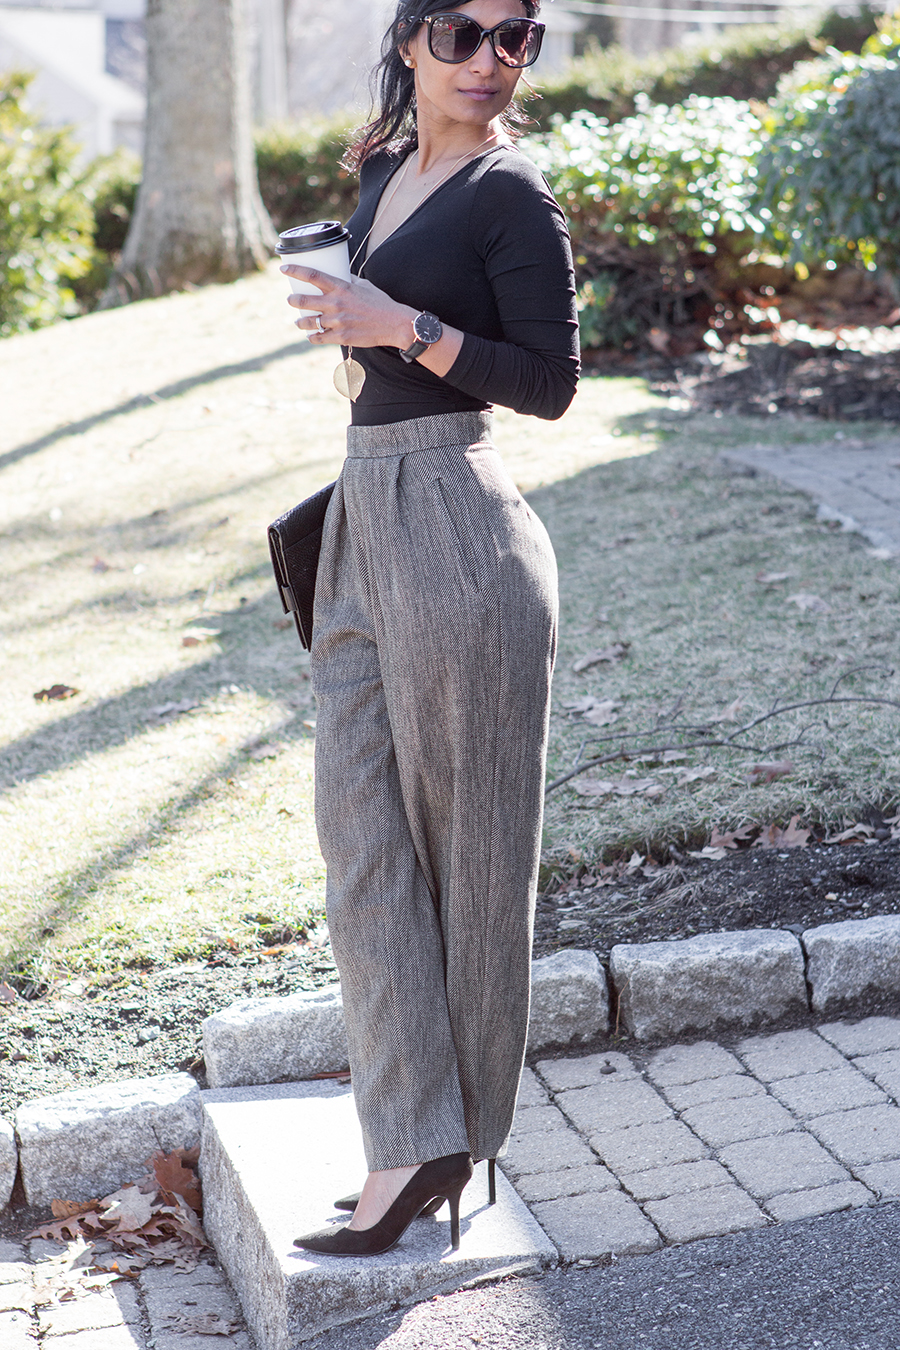 tweed trousers, trousers, tweed, high-waisted, black suede pumps, oversize clutch, black body suit, asos work wear, leaf necklace, tom ford sunglasses, coffee